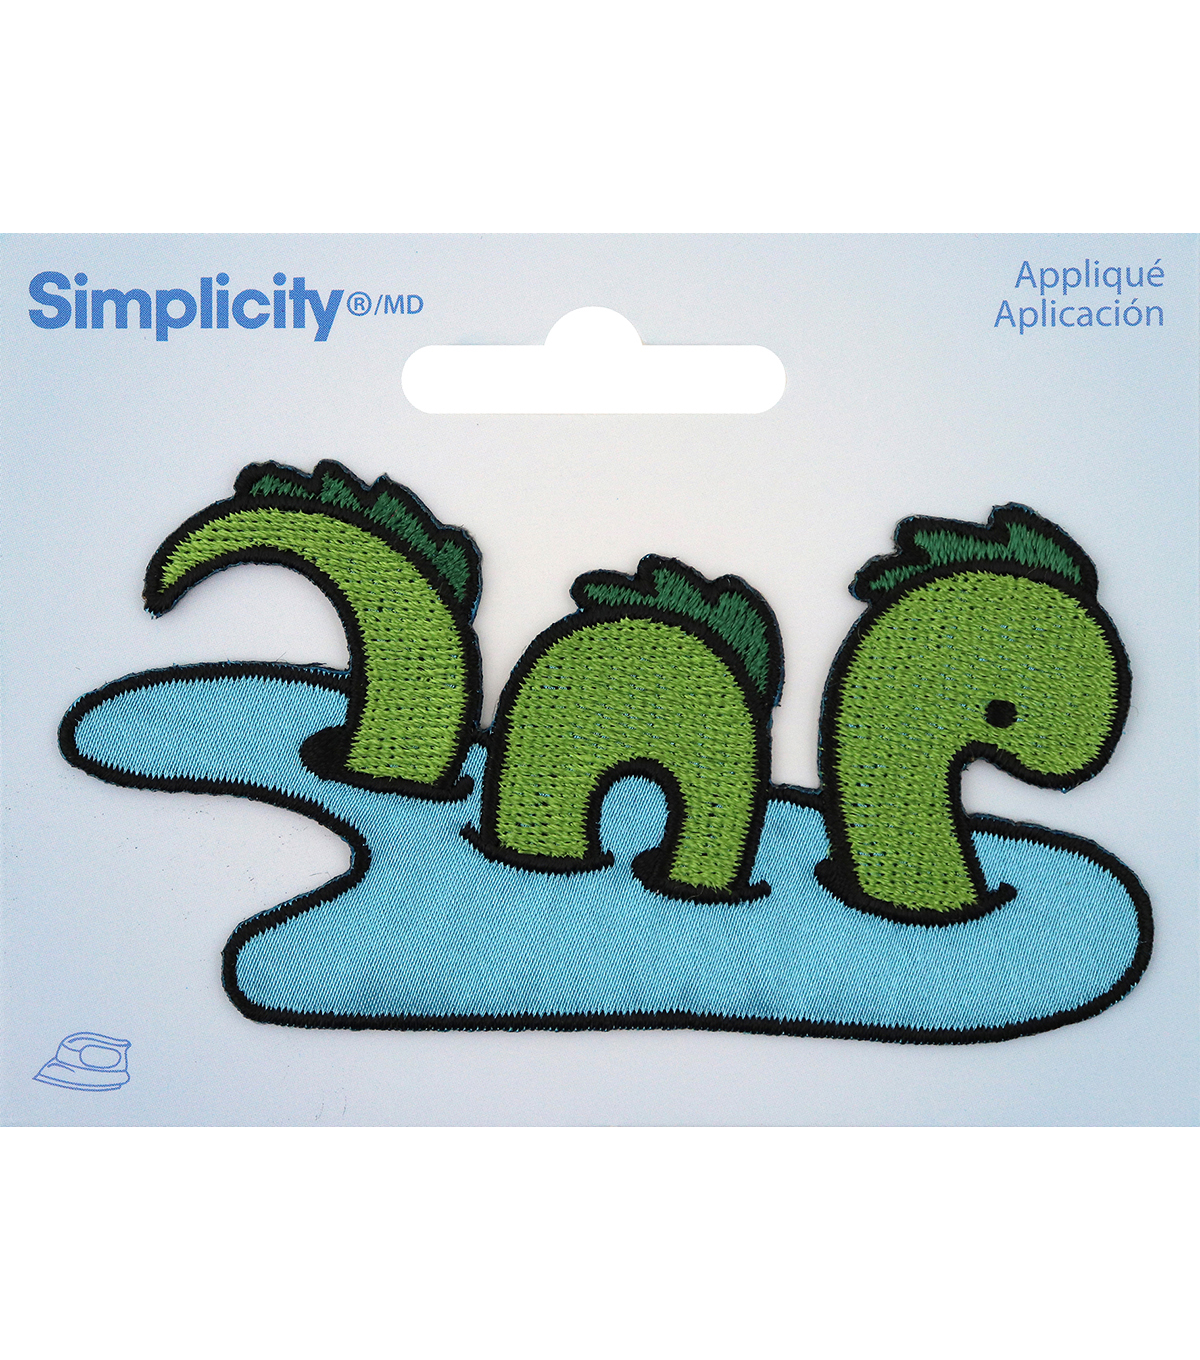 Simplicity Green Loch Ness Monster in Water Iron-on Applique